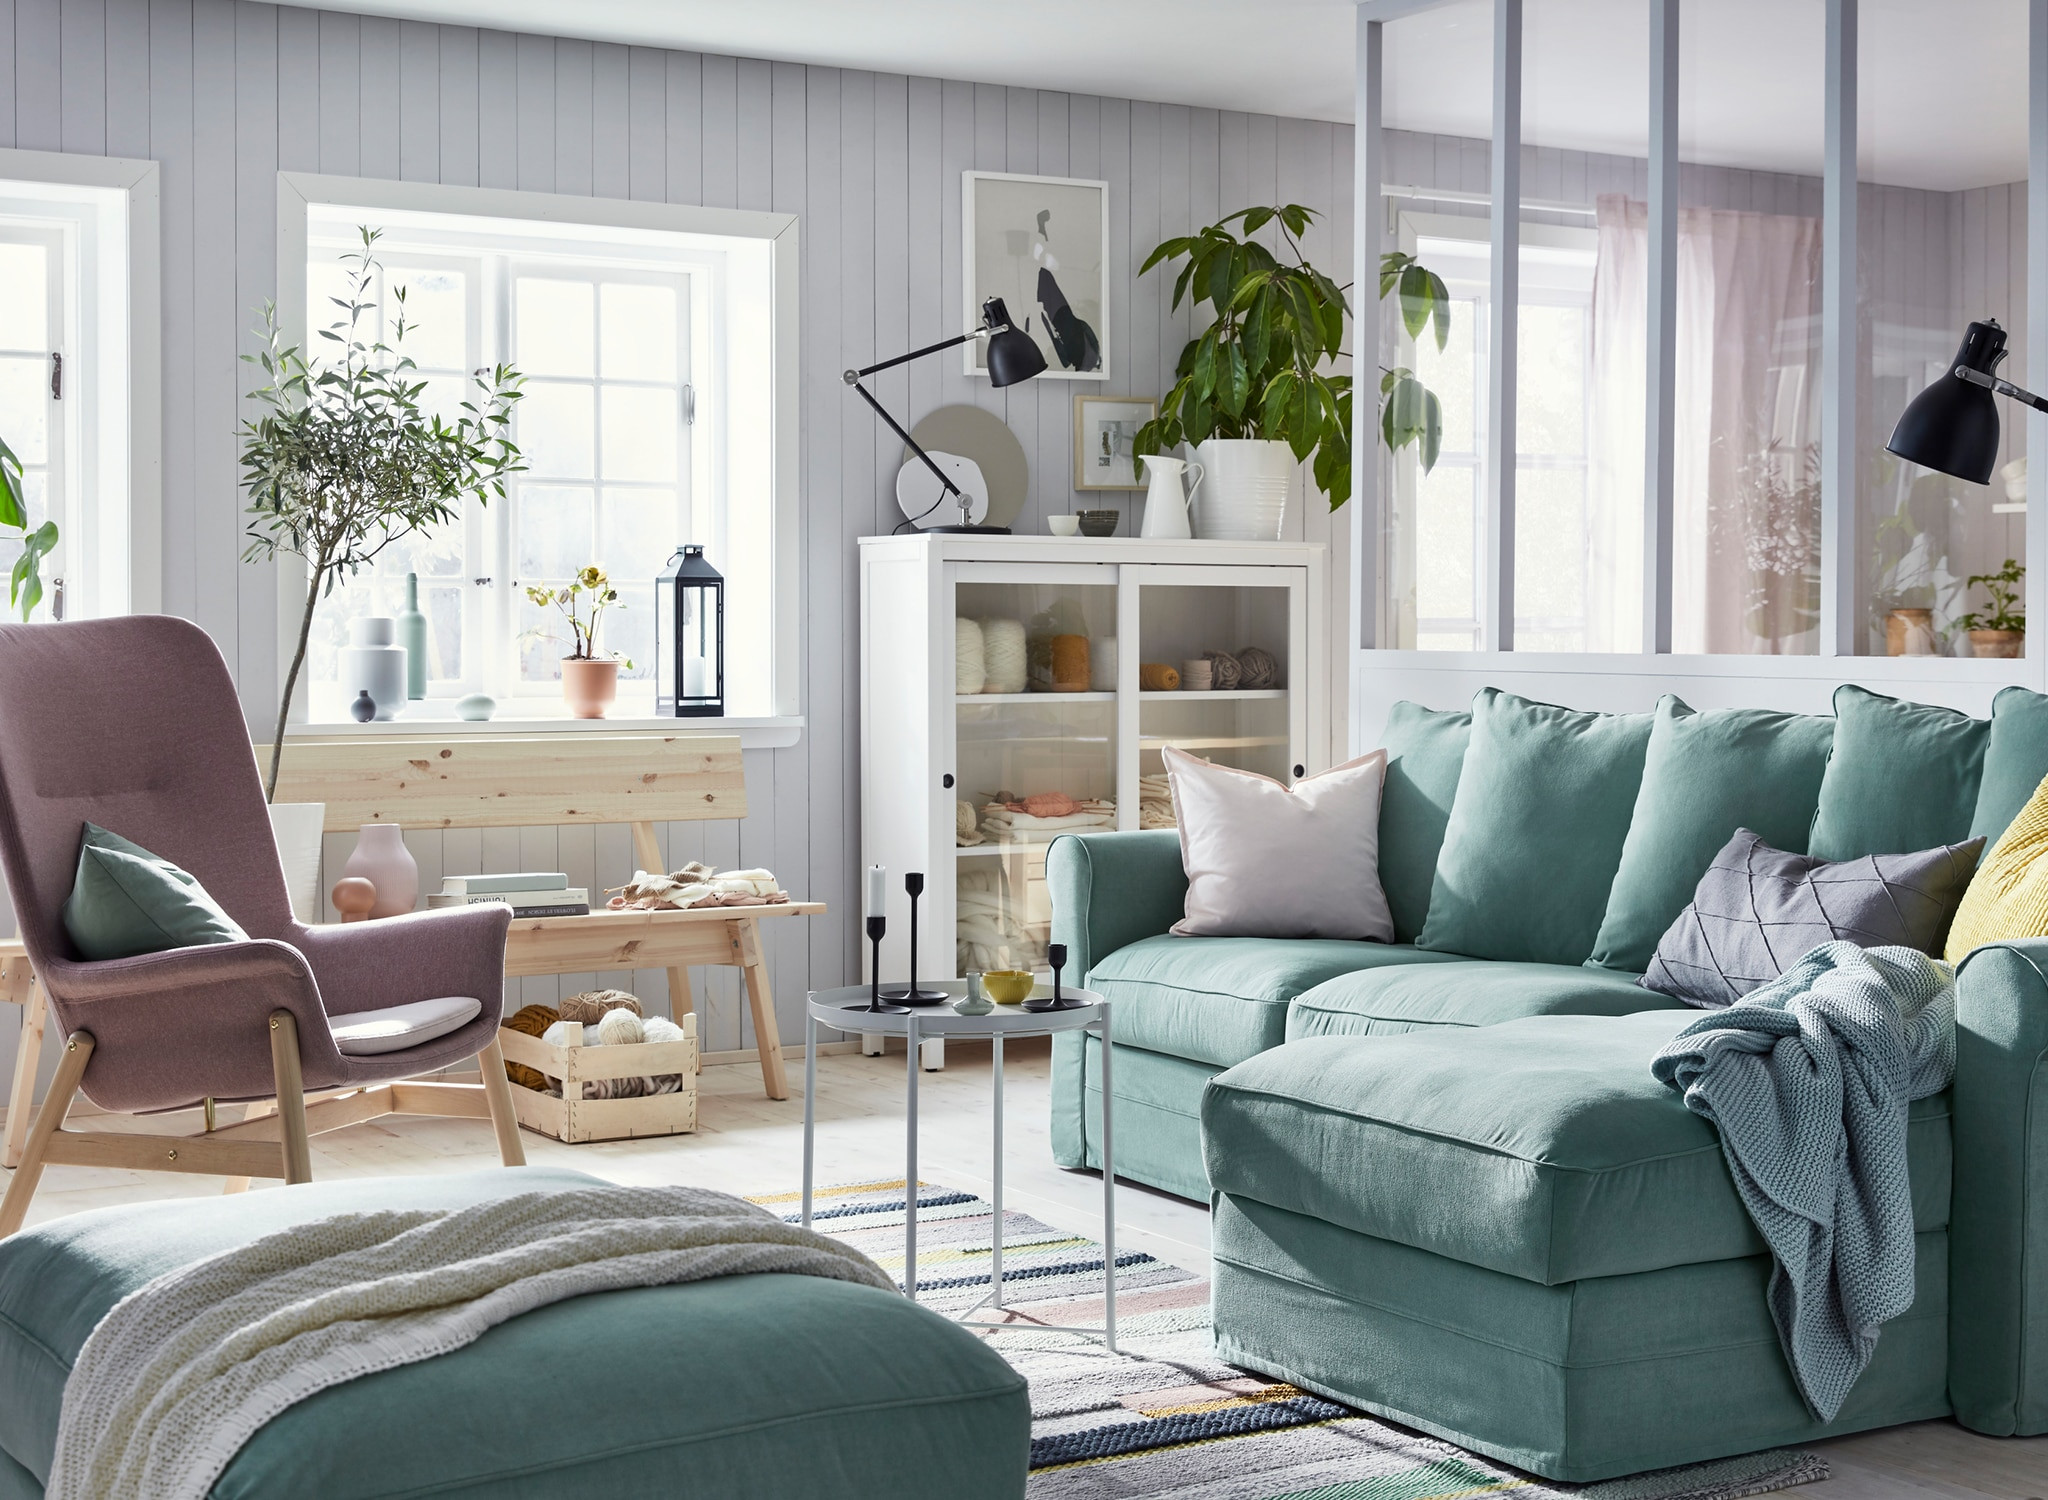 Best ideas about Ikea Living Room . Save or Pin New Living Room Ideas Now.